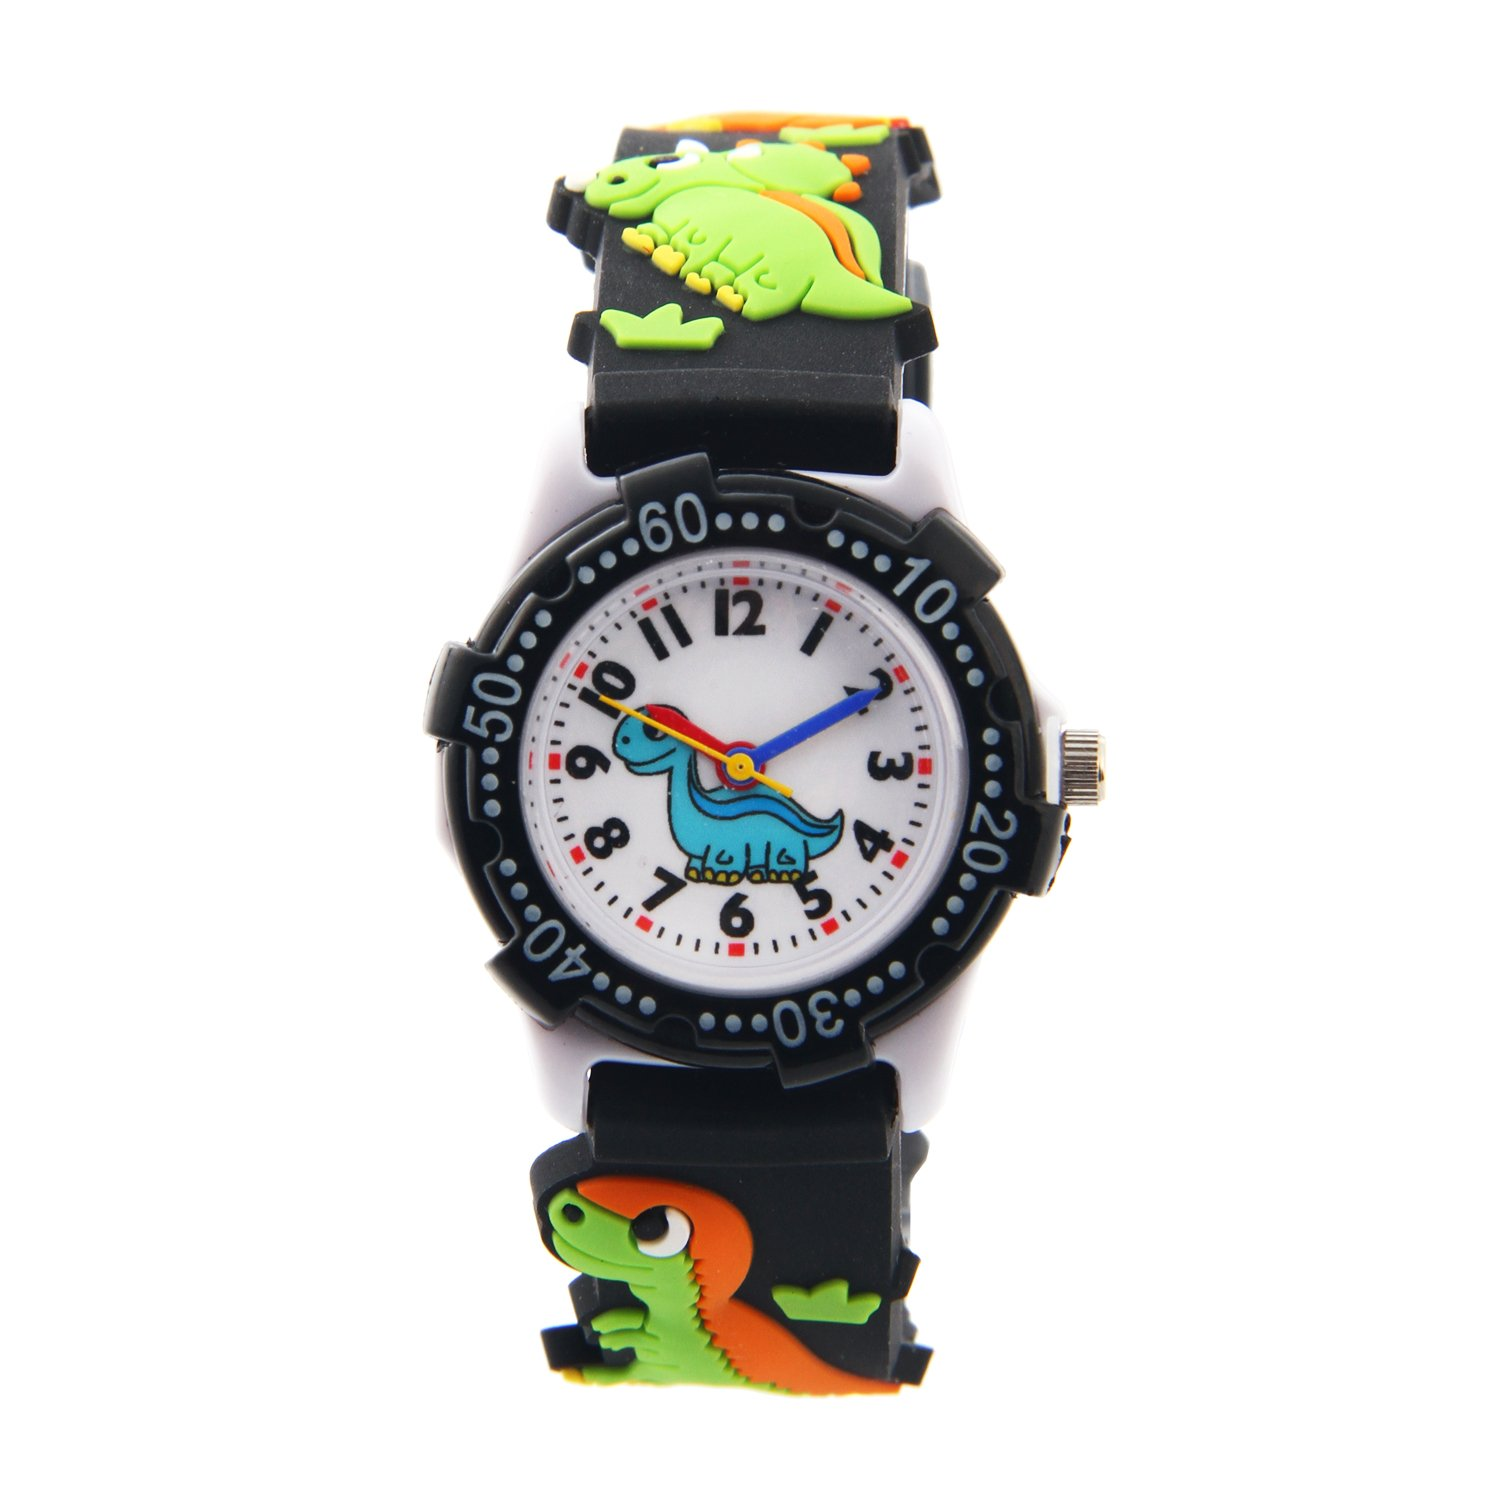 Vavna Little Girls Boy Waterproof 3D Watch Cute Cartoon Digital Wrist watches Kids Children Christmas Gift (Black dinosaur)